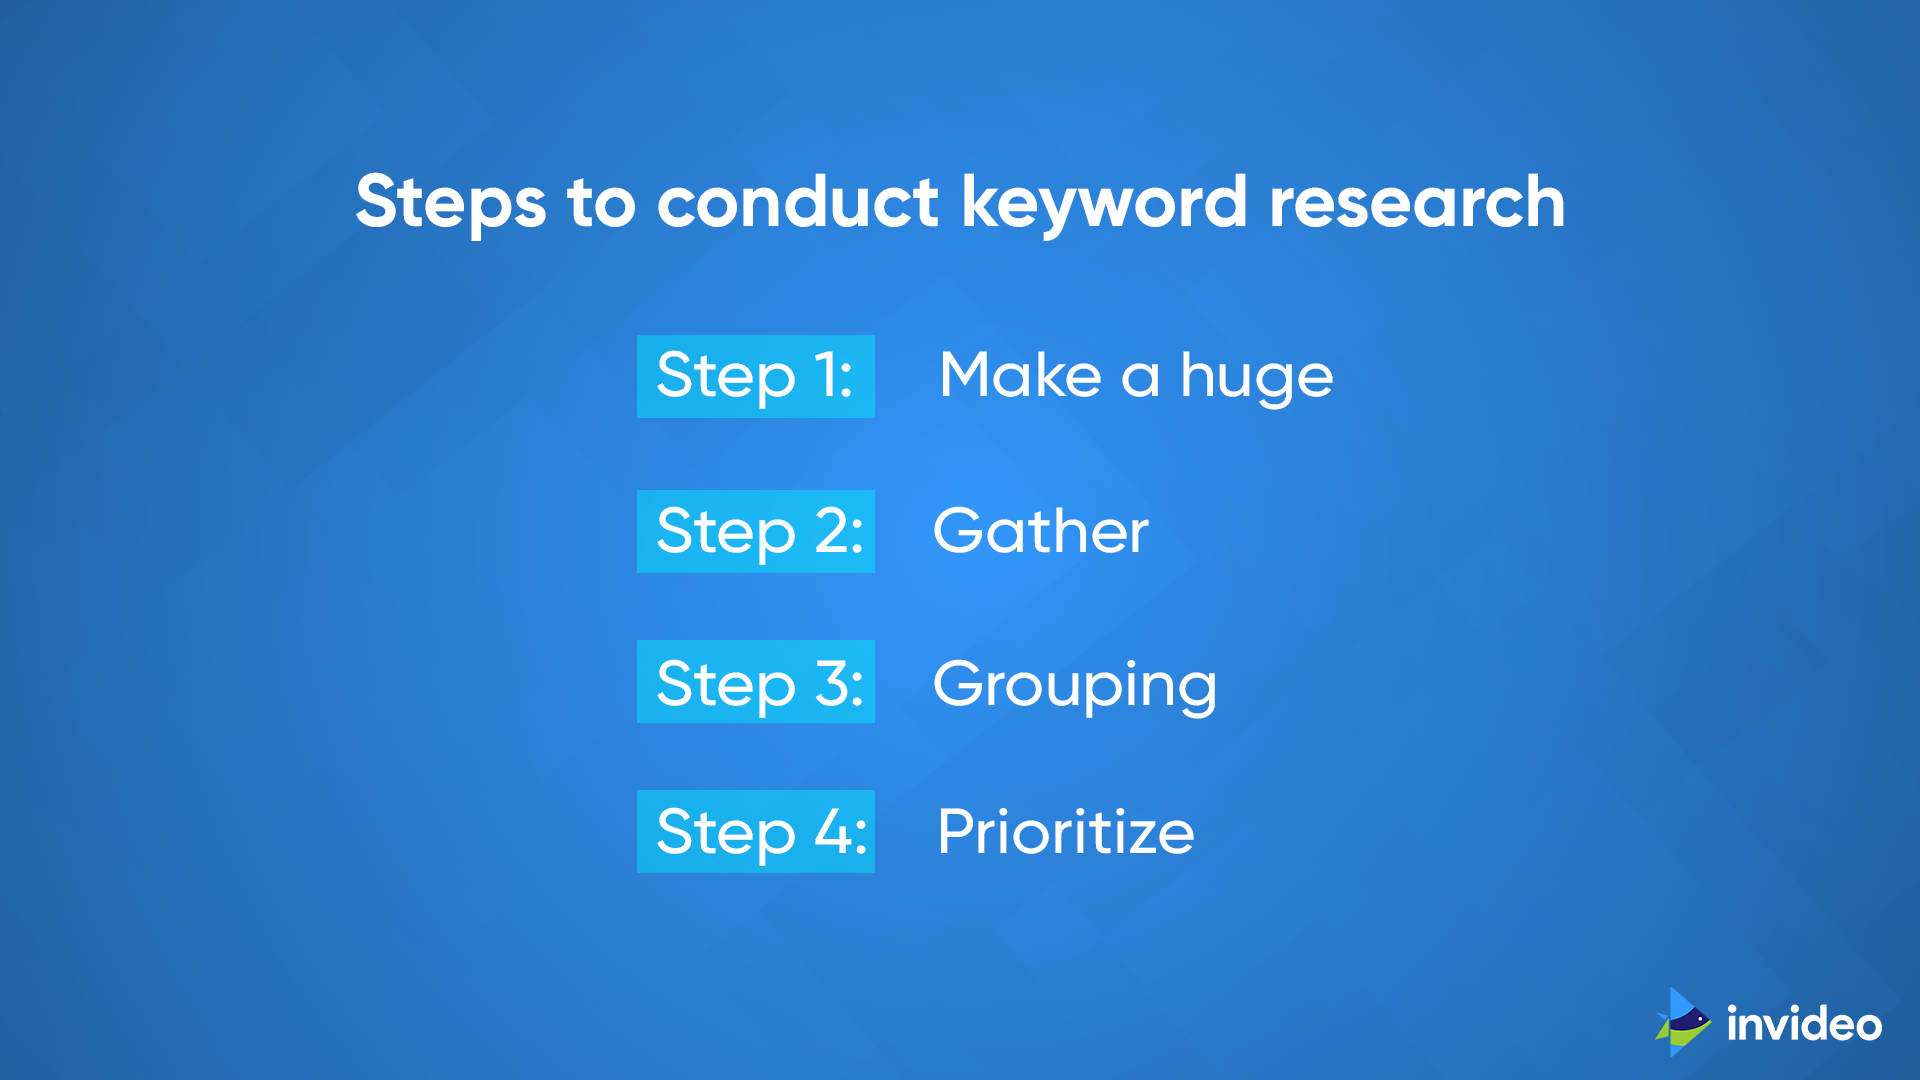 Steps to Conduct Keyword Research